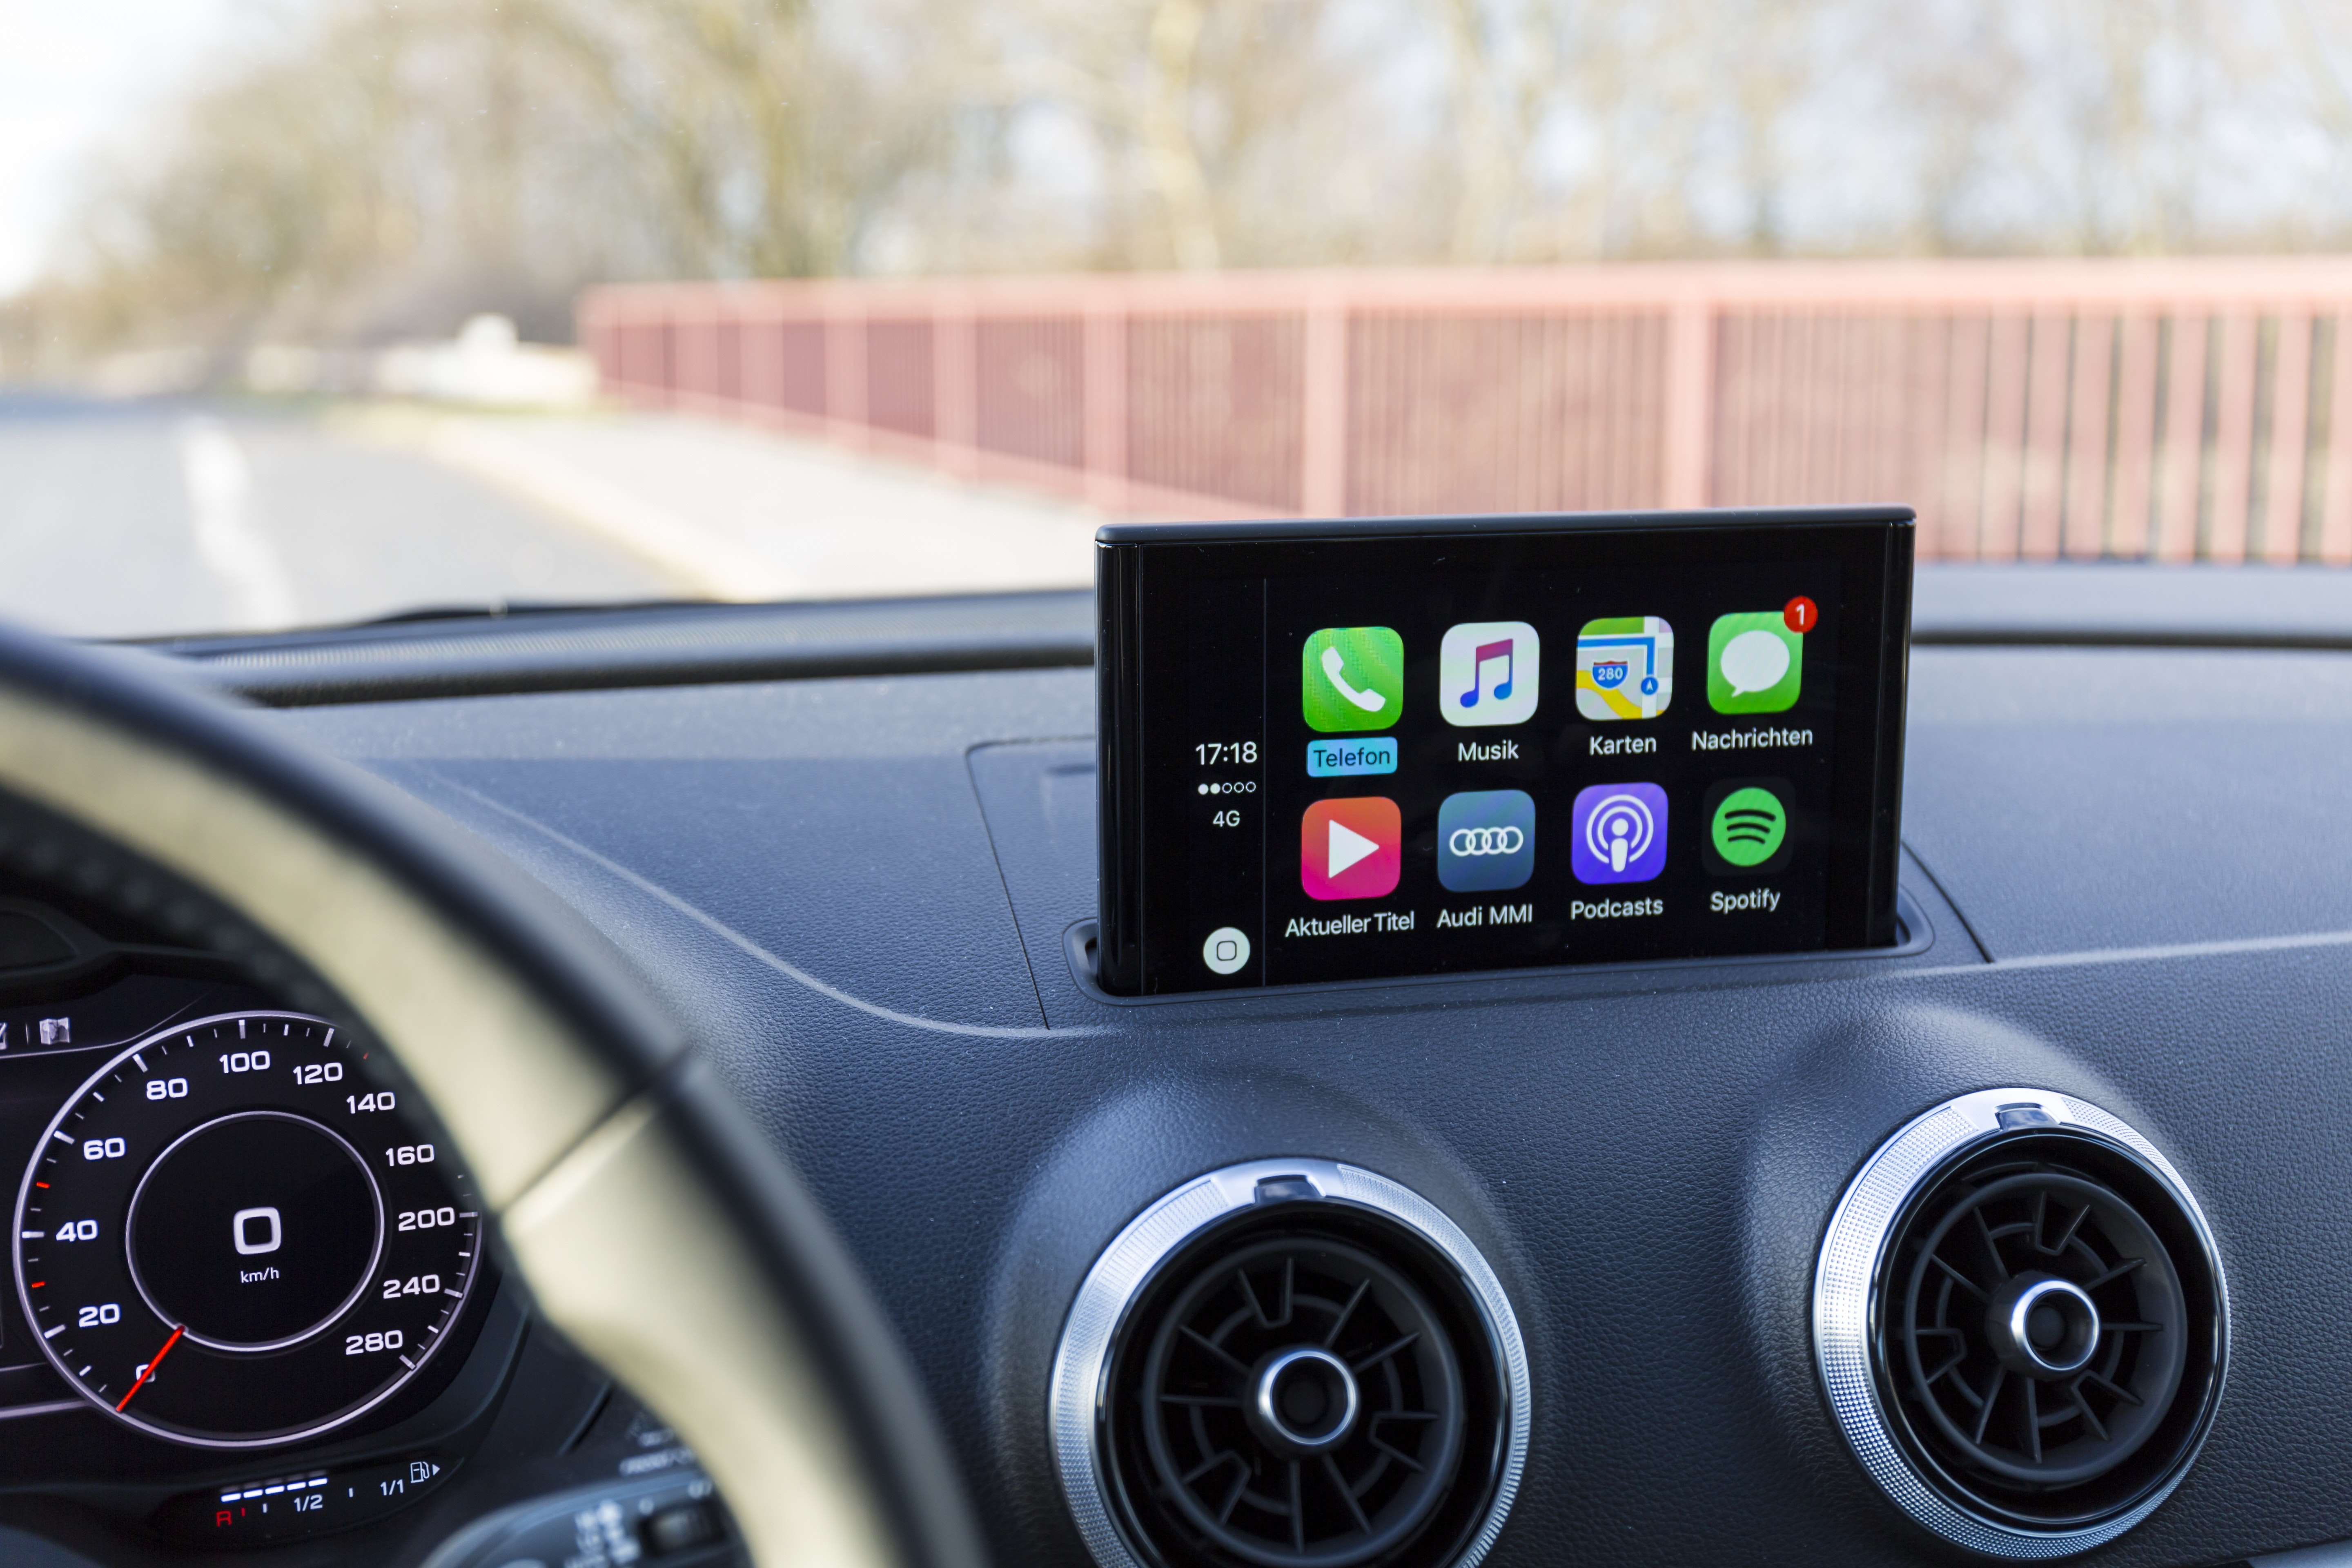 Apple CarPlay – Navi direkt vom iPhone